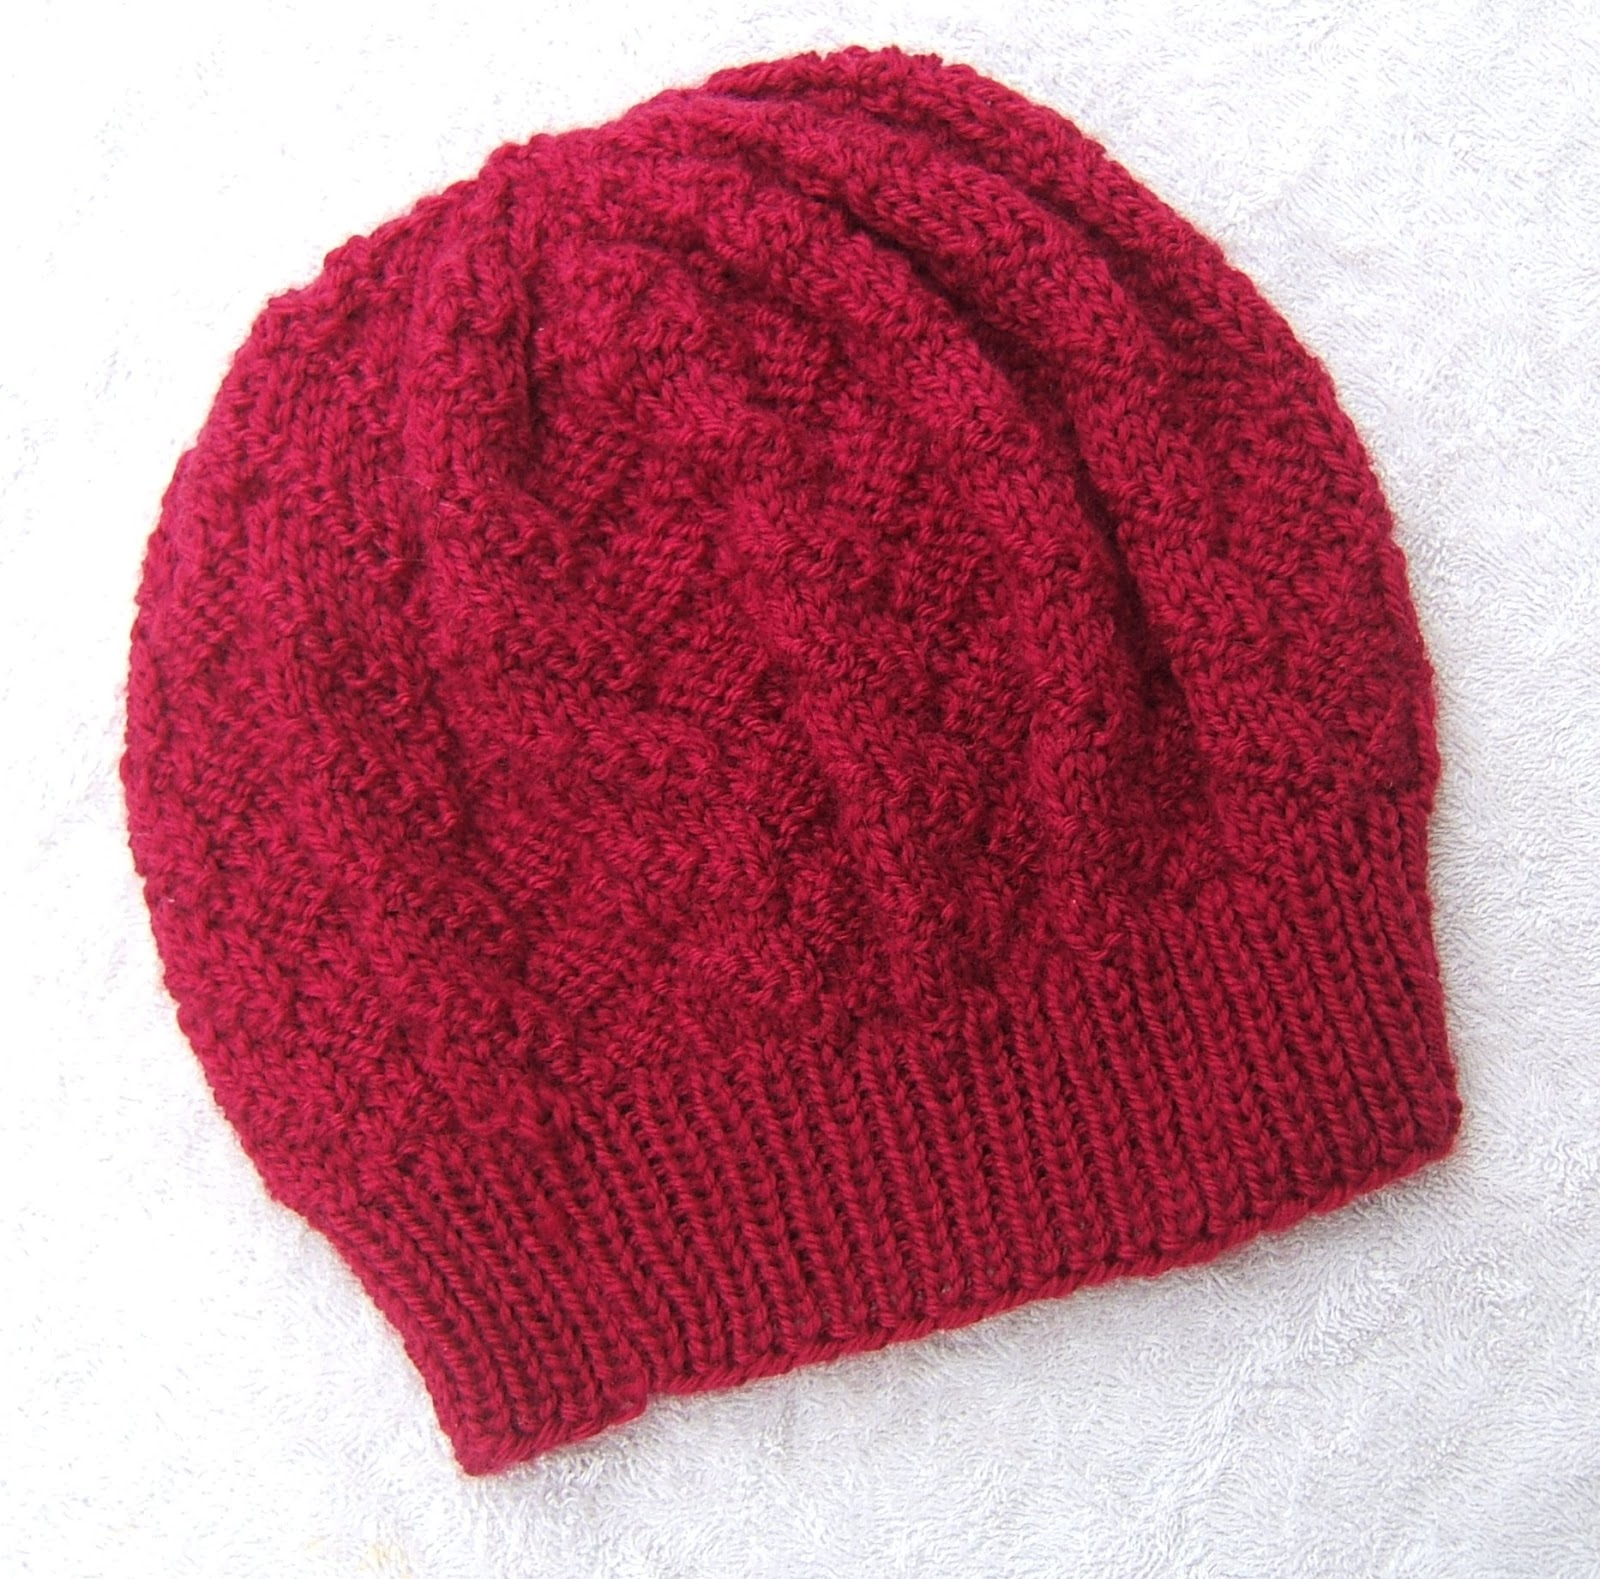 aussie knitting threads: slouchy hats